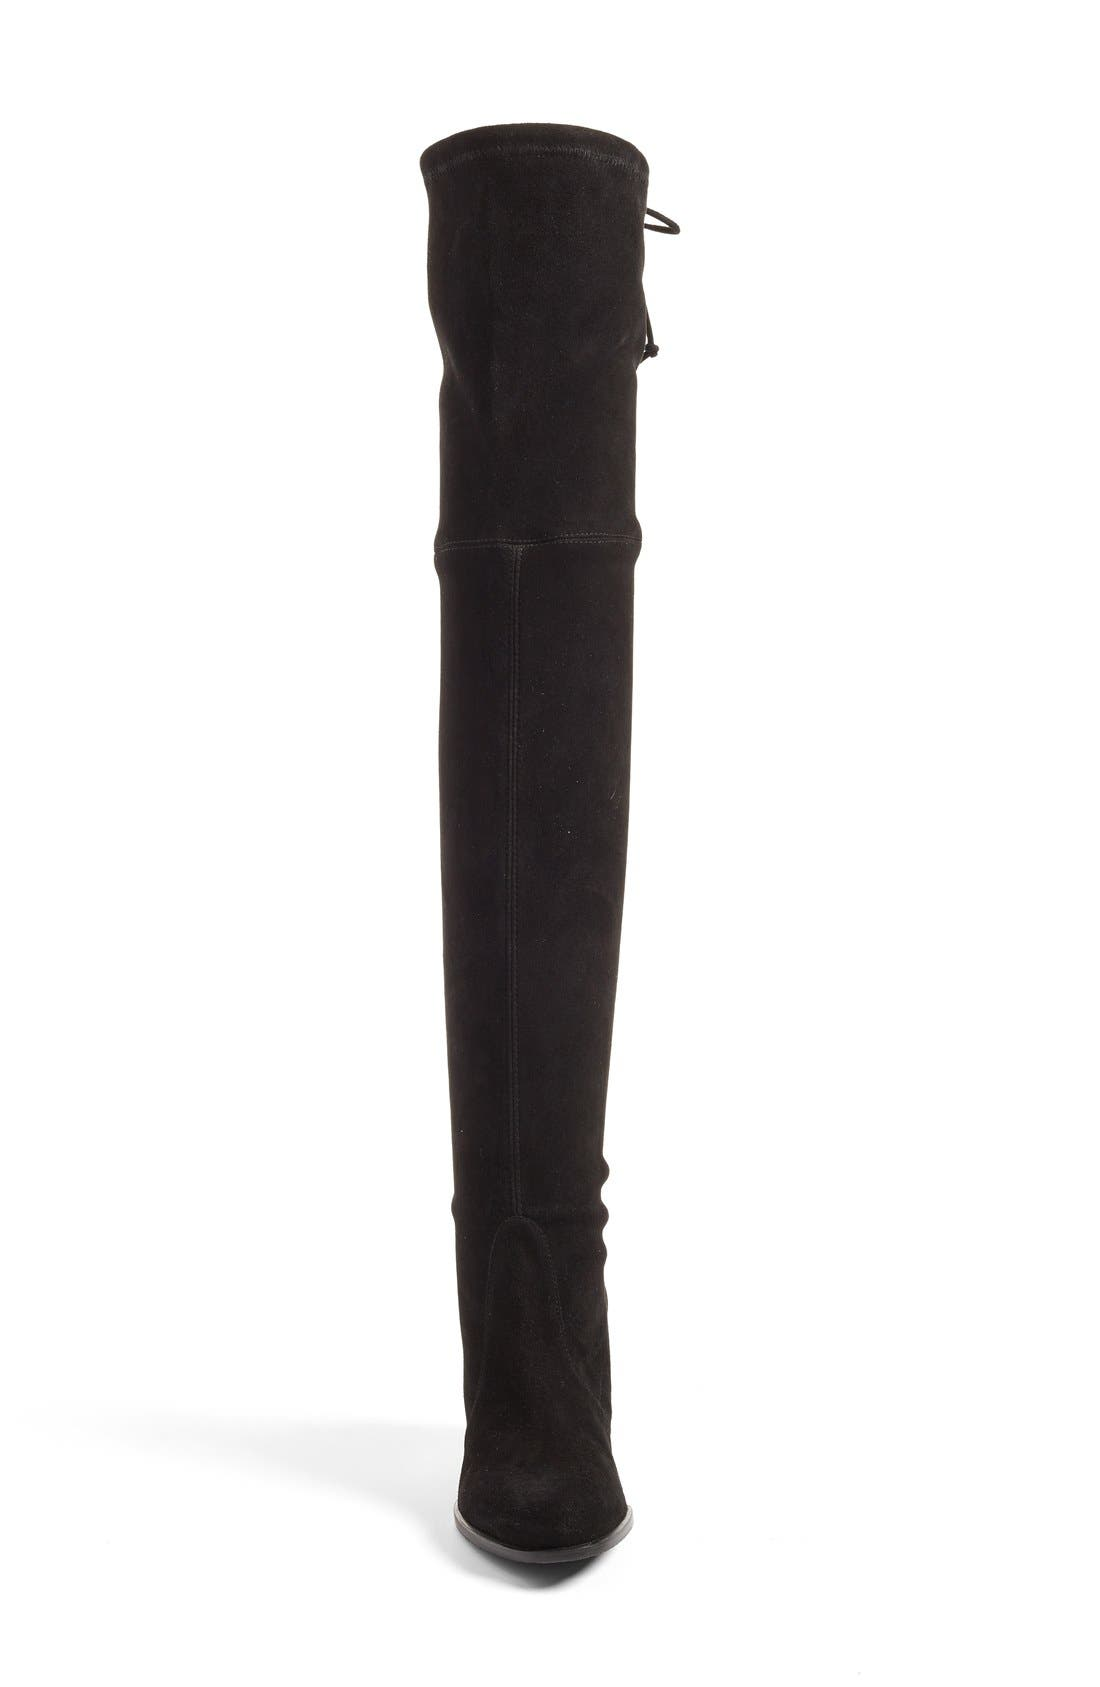 Tieland Over the Knee Boot,                             Alternate thumbnail 4, color,                             BLACK SUEDE